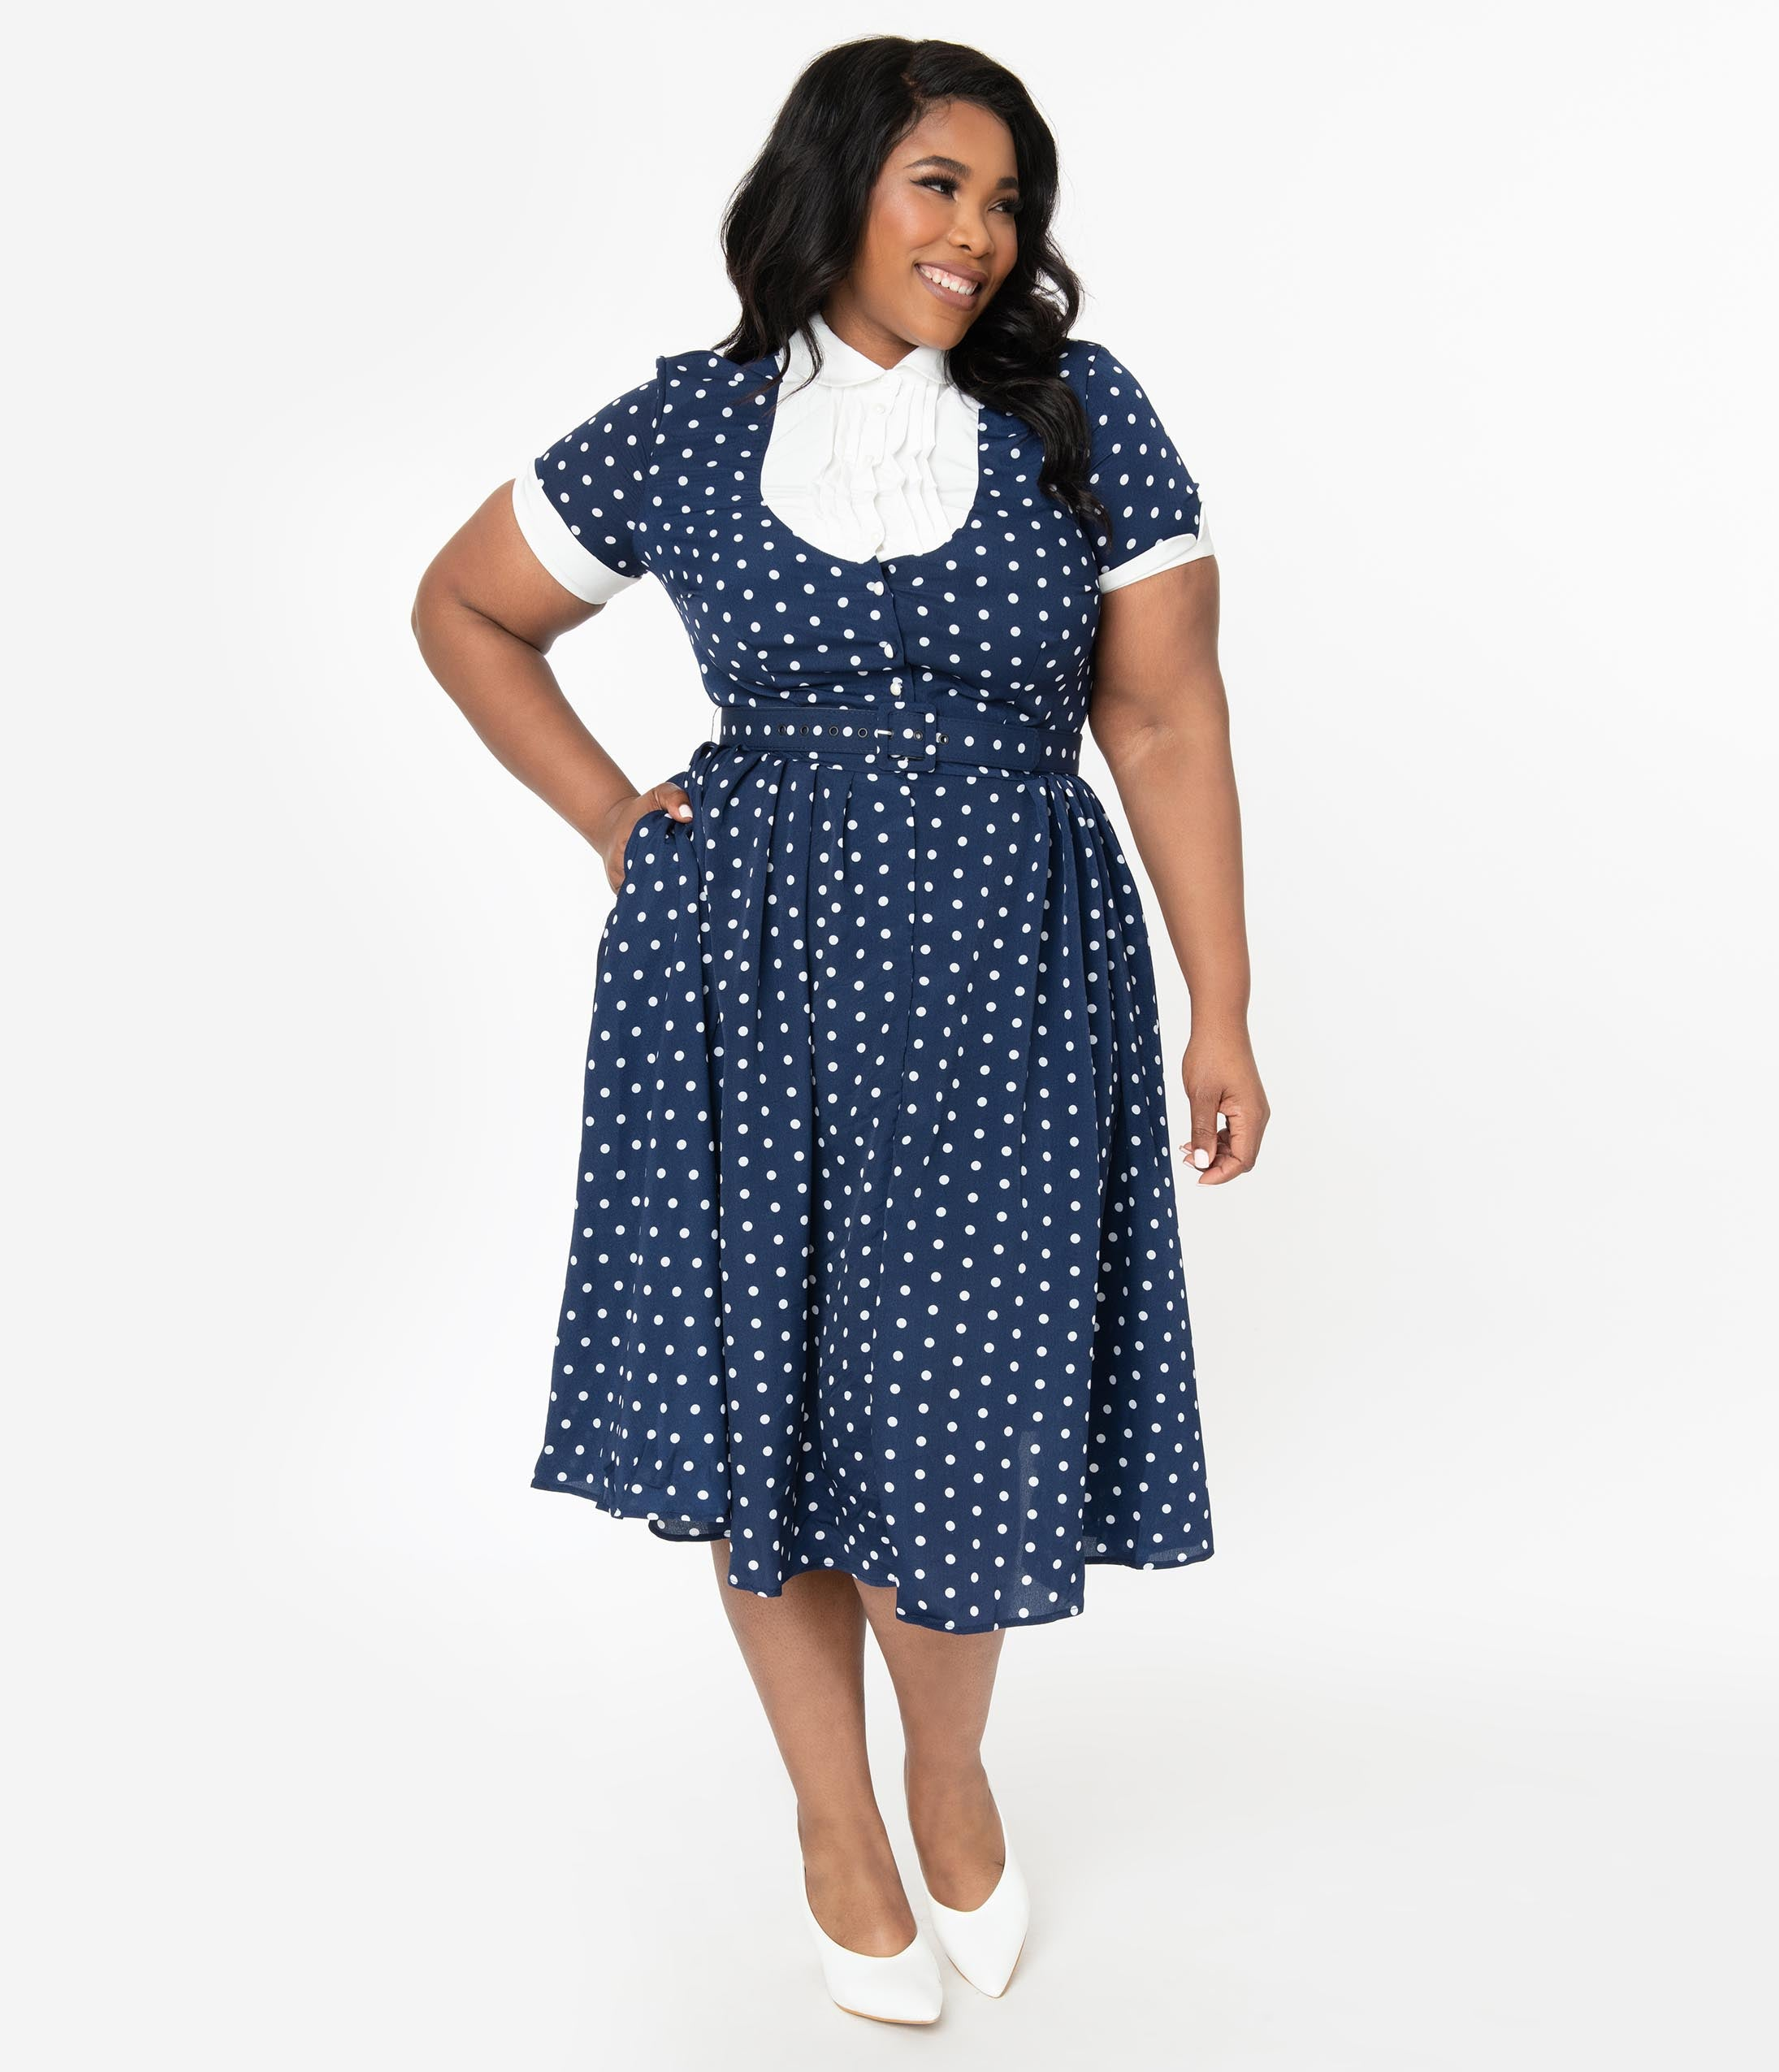 1950s Dresses, 50s Dresses | 1950s Style Dresses I Love Lucy X Unique Vintage Plus Size Navy  White Polka Dot Ricardo Swing Dress $98.00 AT vintagedancer.com